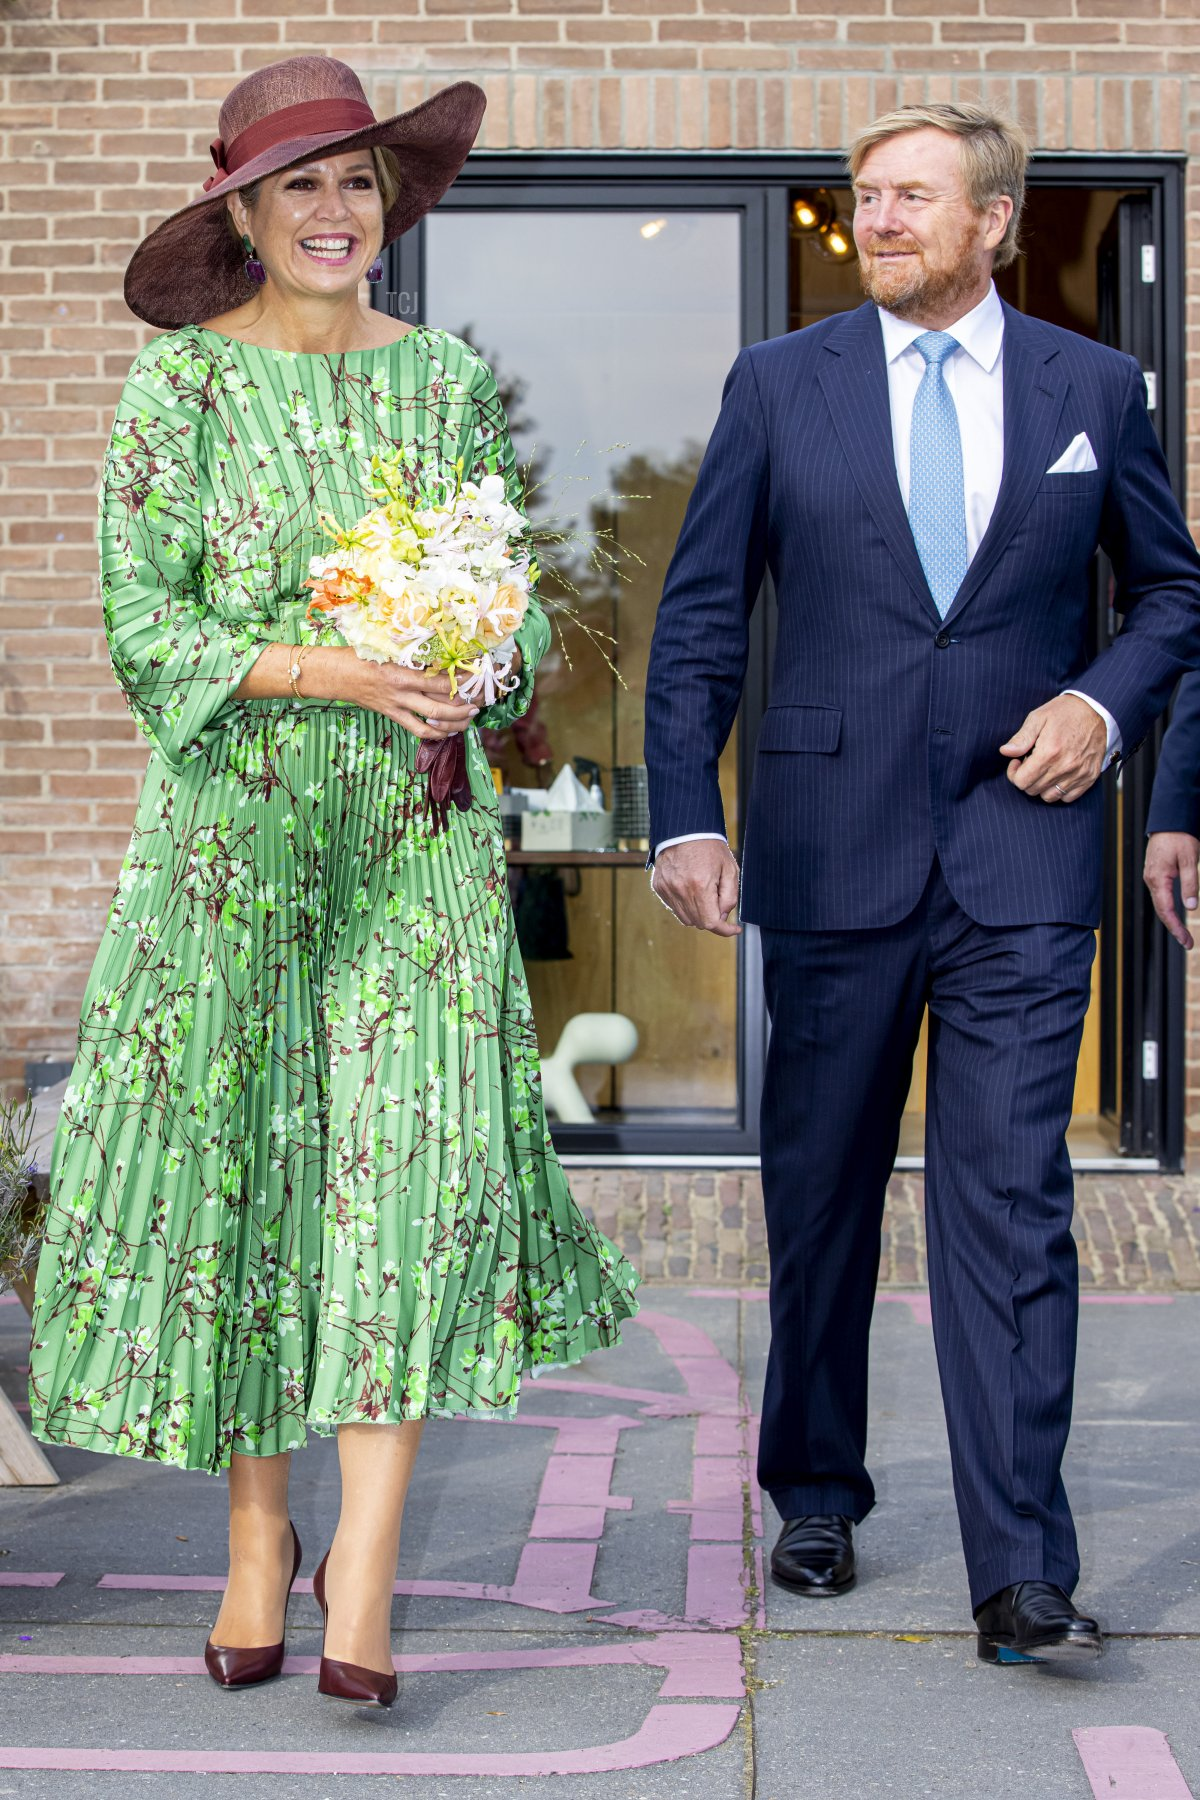 King Willem-Alexander of The Netherlands and Queen Maxima of The Netherlands visit the harbor of Deventer that is changed into an area for entrepreneurs on September 14, 2021 in Deventer, Netherlands